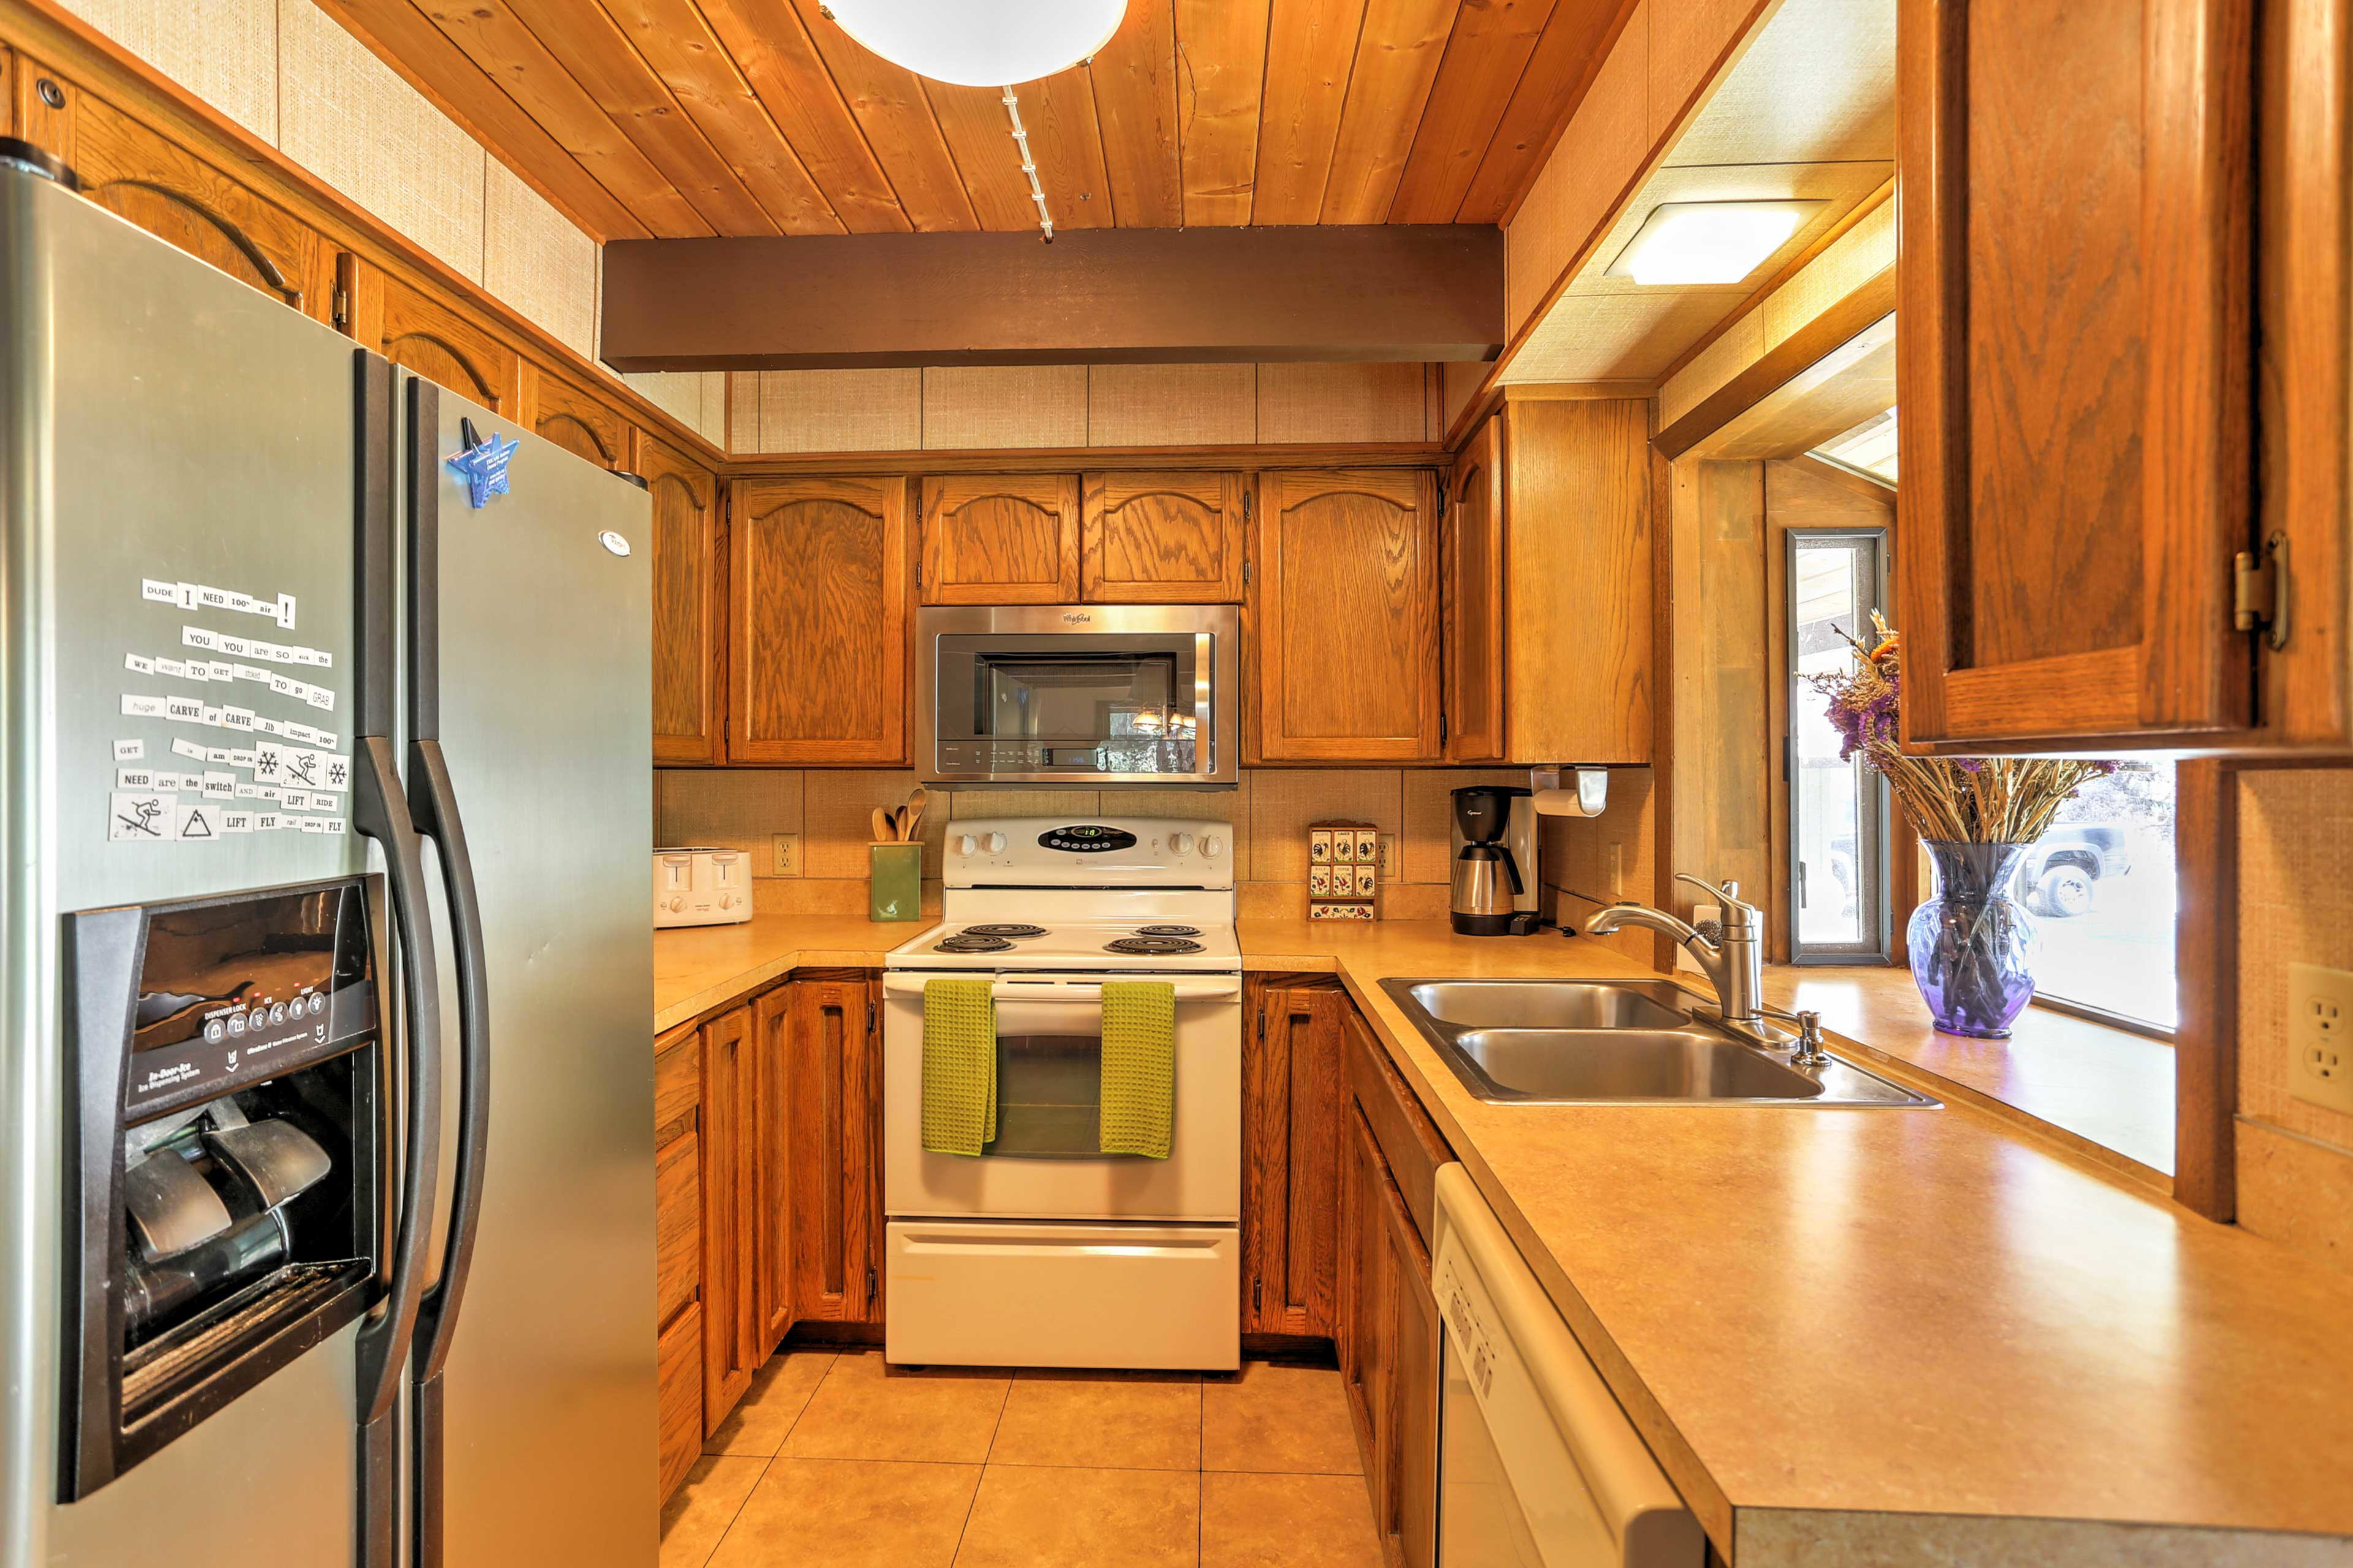 Whip up your favorite recipes in the fully equipped kitchen during your stay!